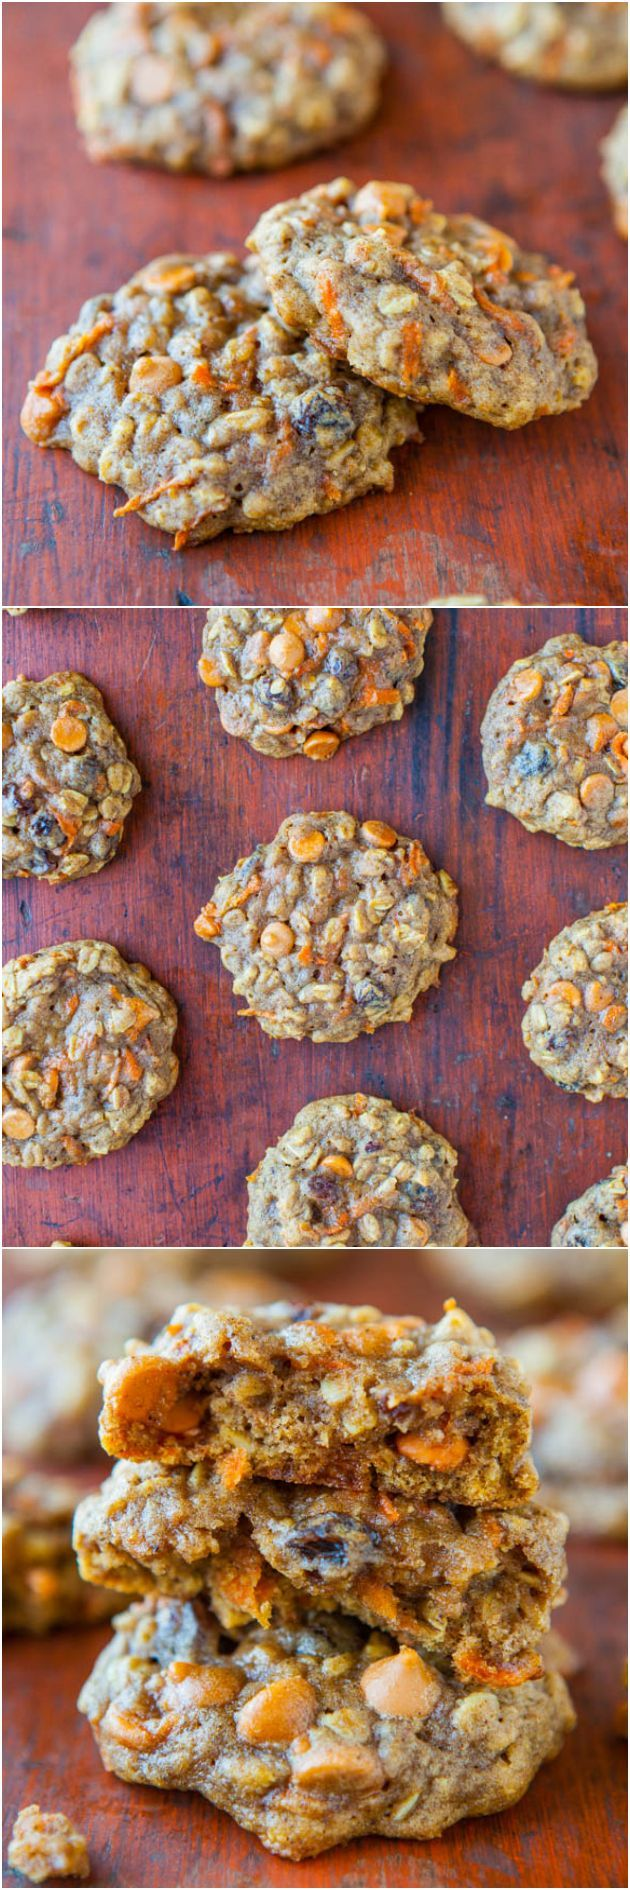 Soft and Chewy Spiced Carrot Cake Cookies  by averiecooks: Tons of texture and so moist with zero cakiness. Eat your vegetables by way of healthy cookies!